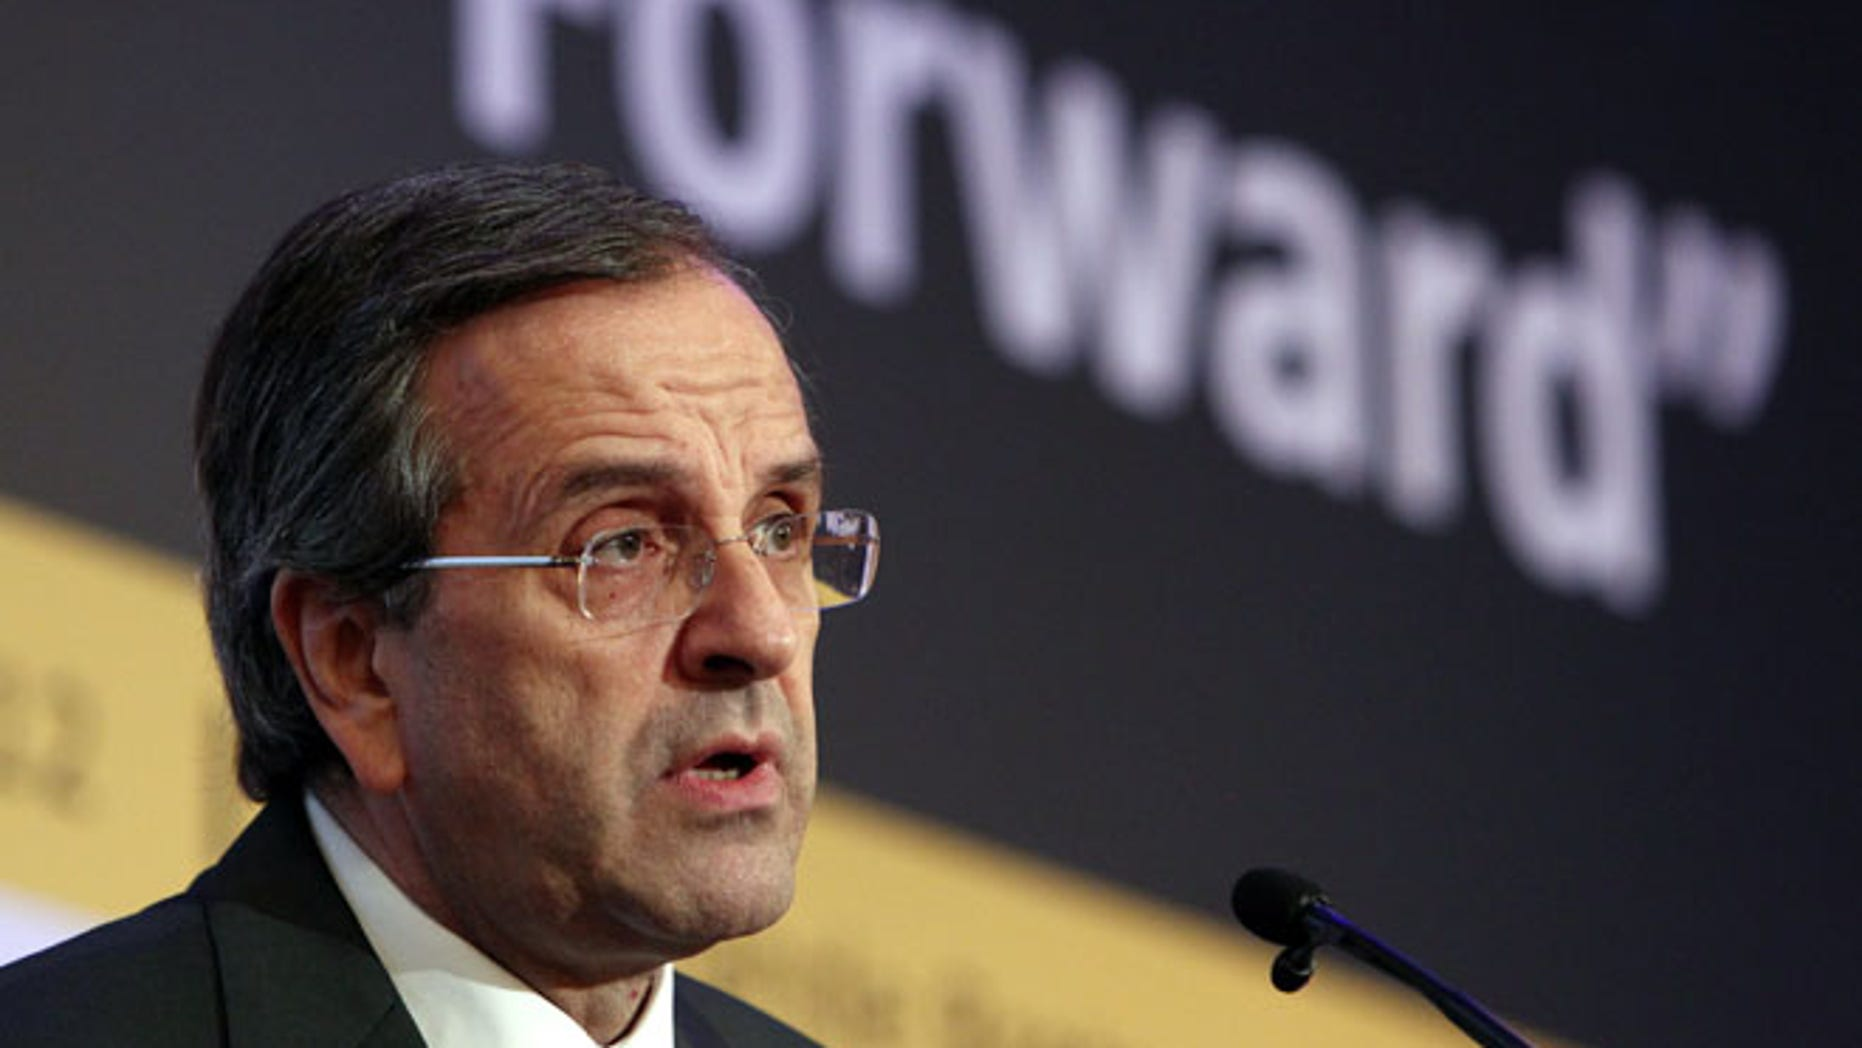 Oct. 15, 2012: Thisfile photo shows Greece's Prime Minister Antonis Samaras delivers a speech in a forum of International Herald Tribune in Athens.